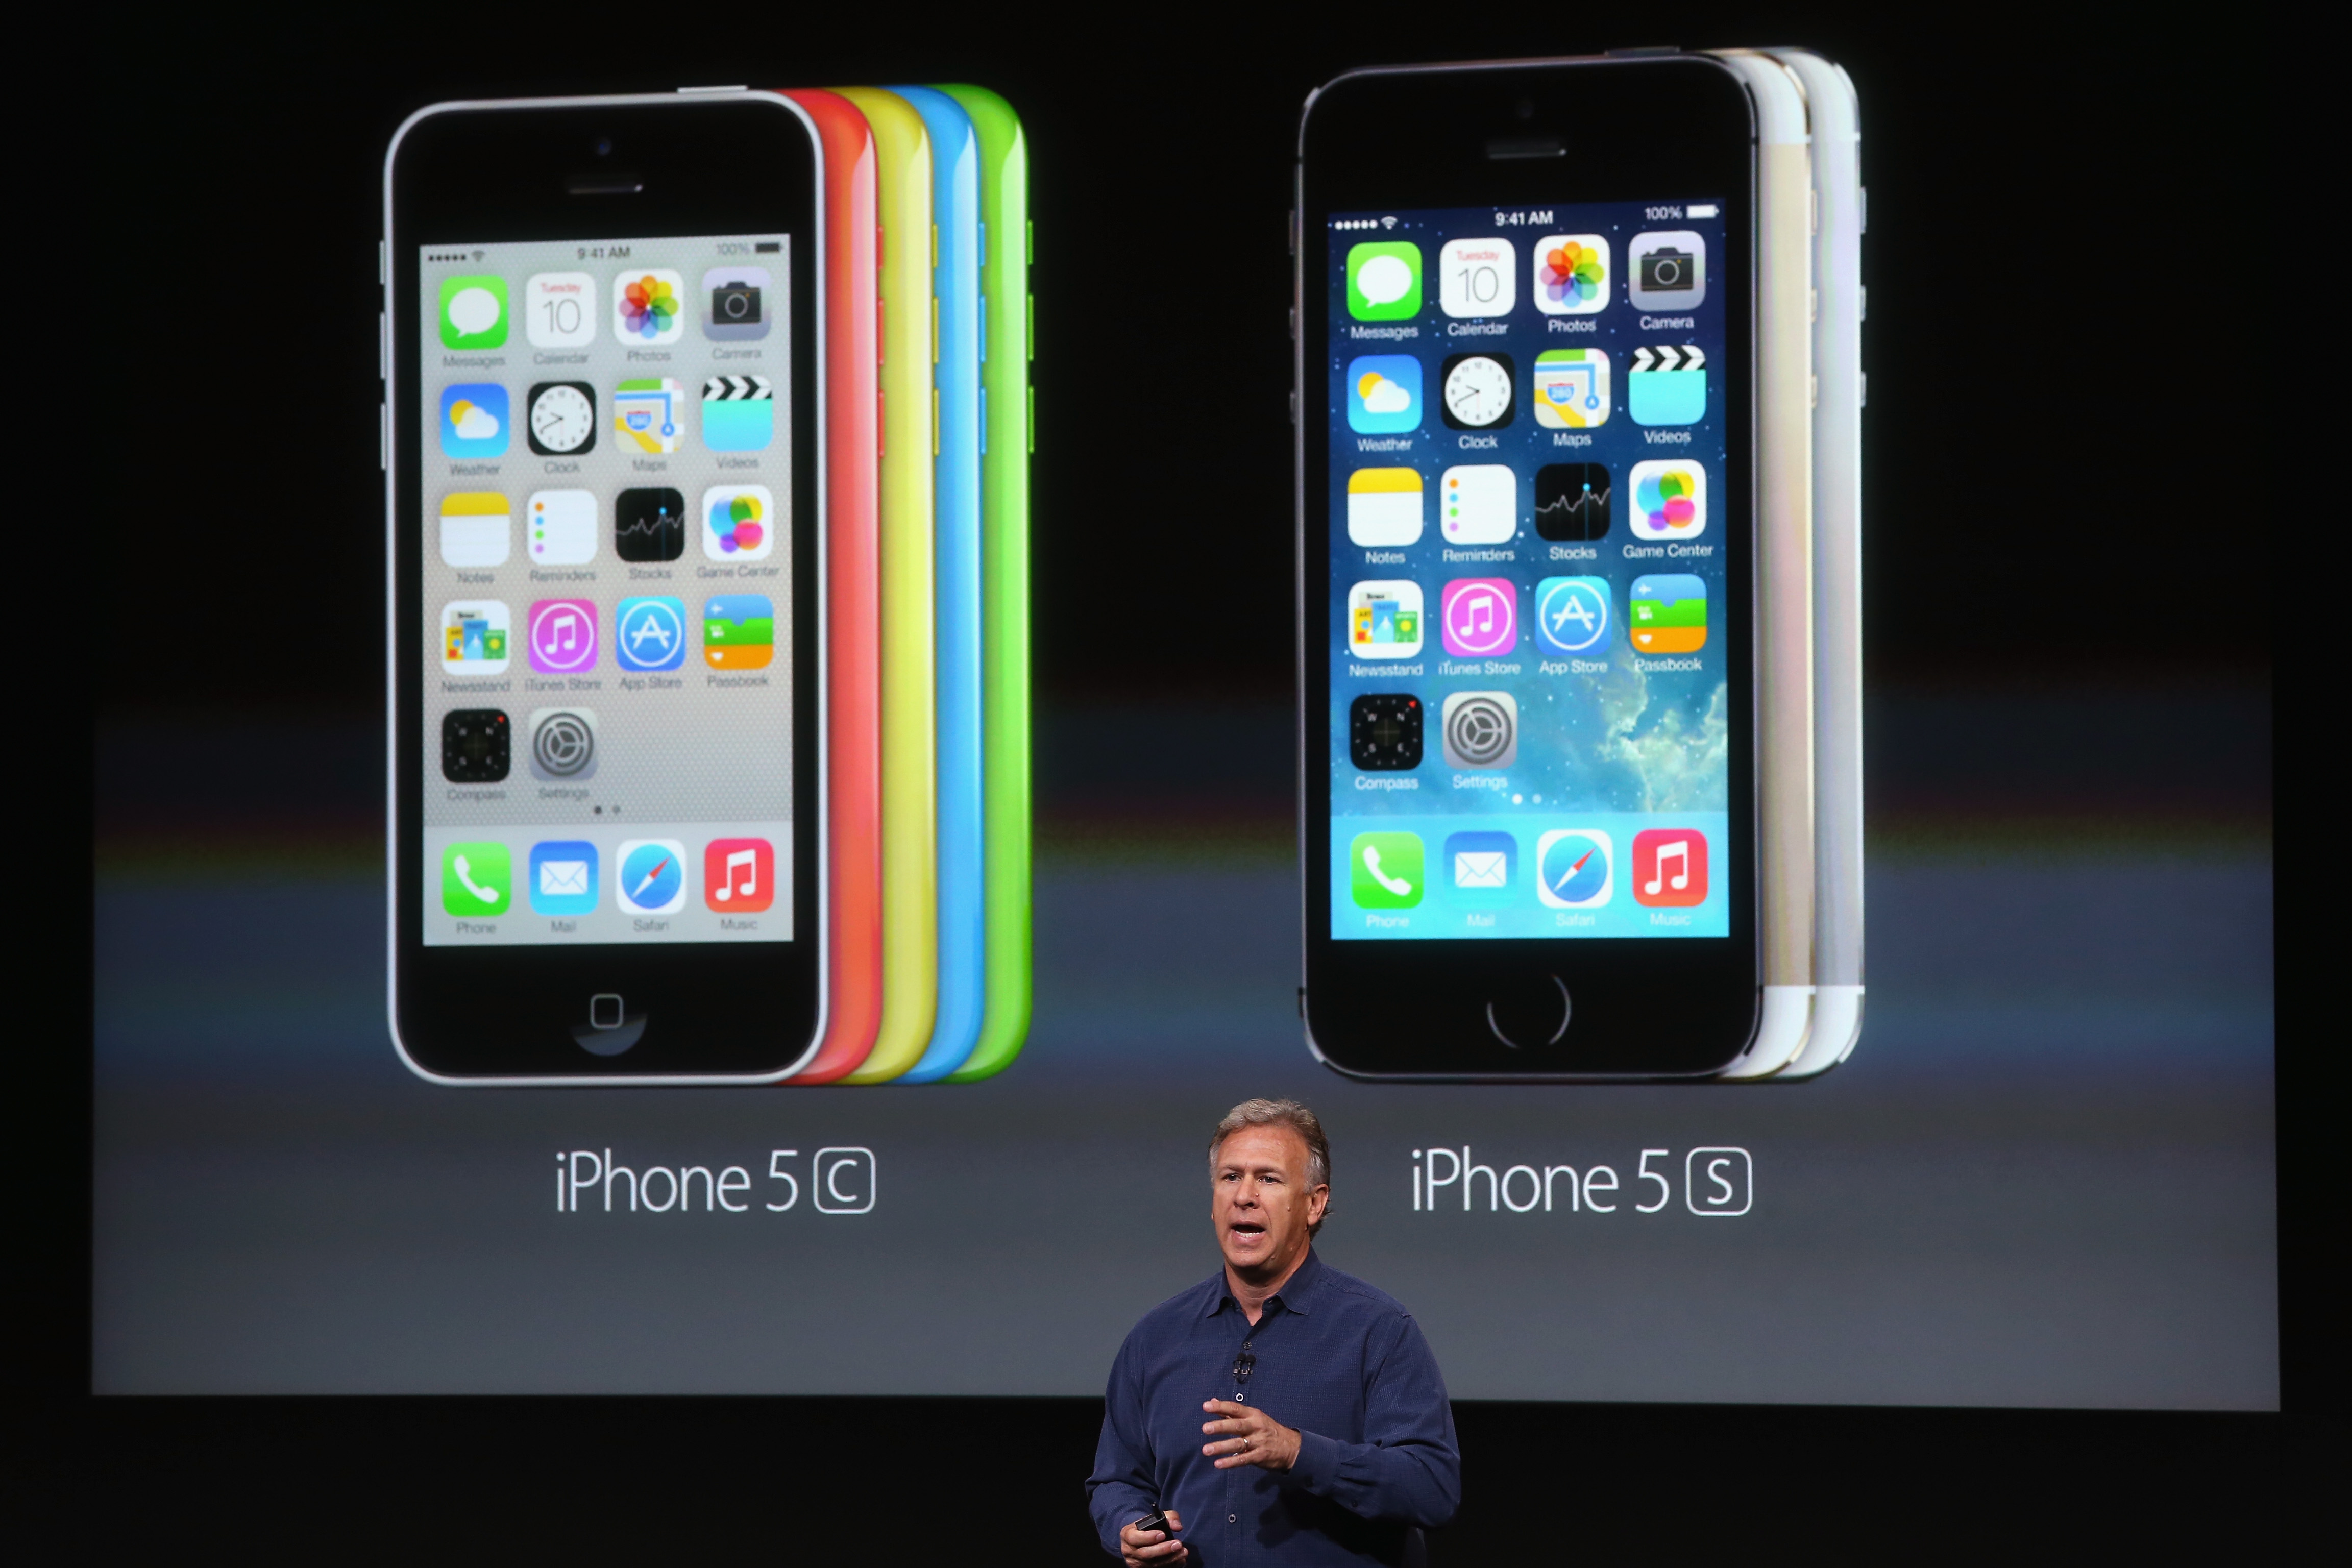 iphone 5c vs iphone 5s Iphone 5c and iphone 5s are apple's 2013 update to the iphone iphone 5s is the flagship device with top grade aluminium body while iphone 5c is the low.